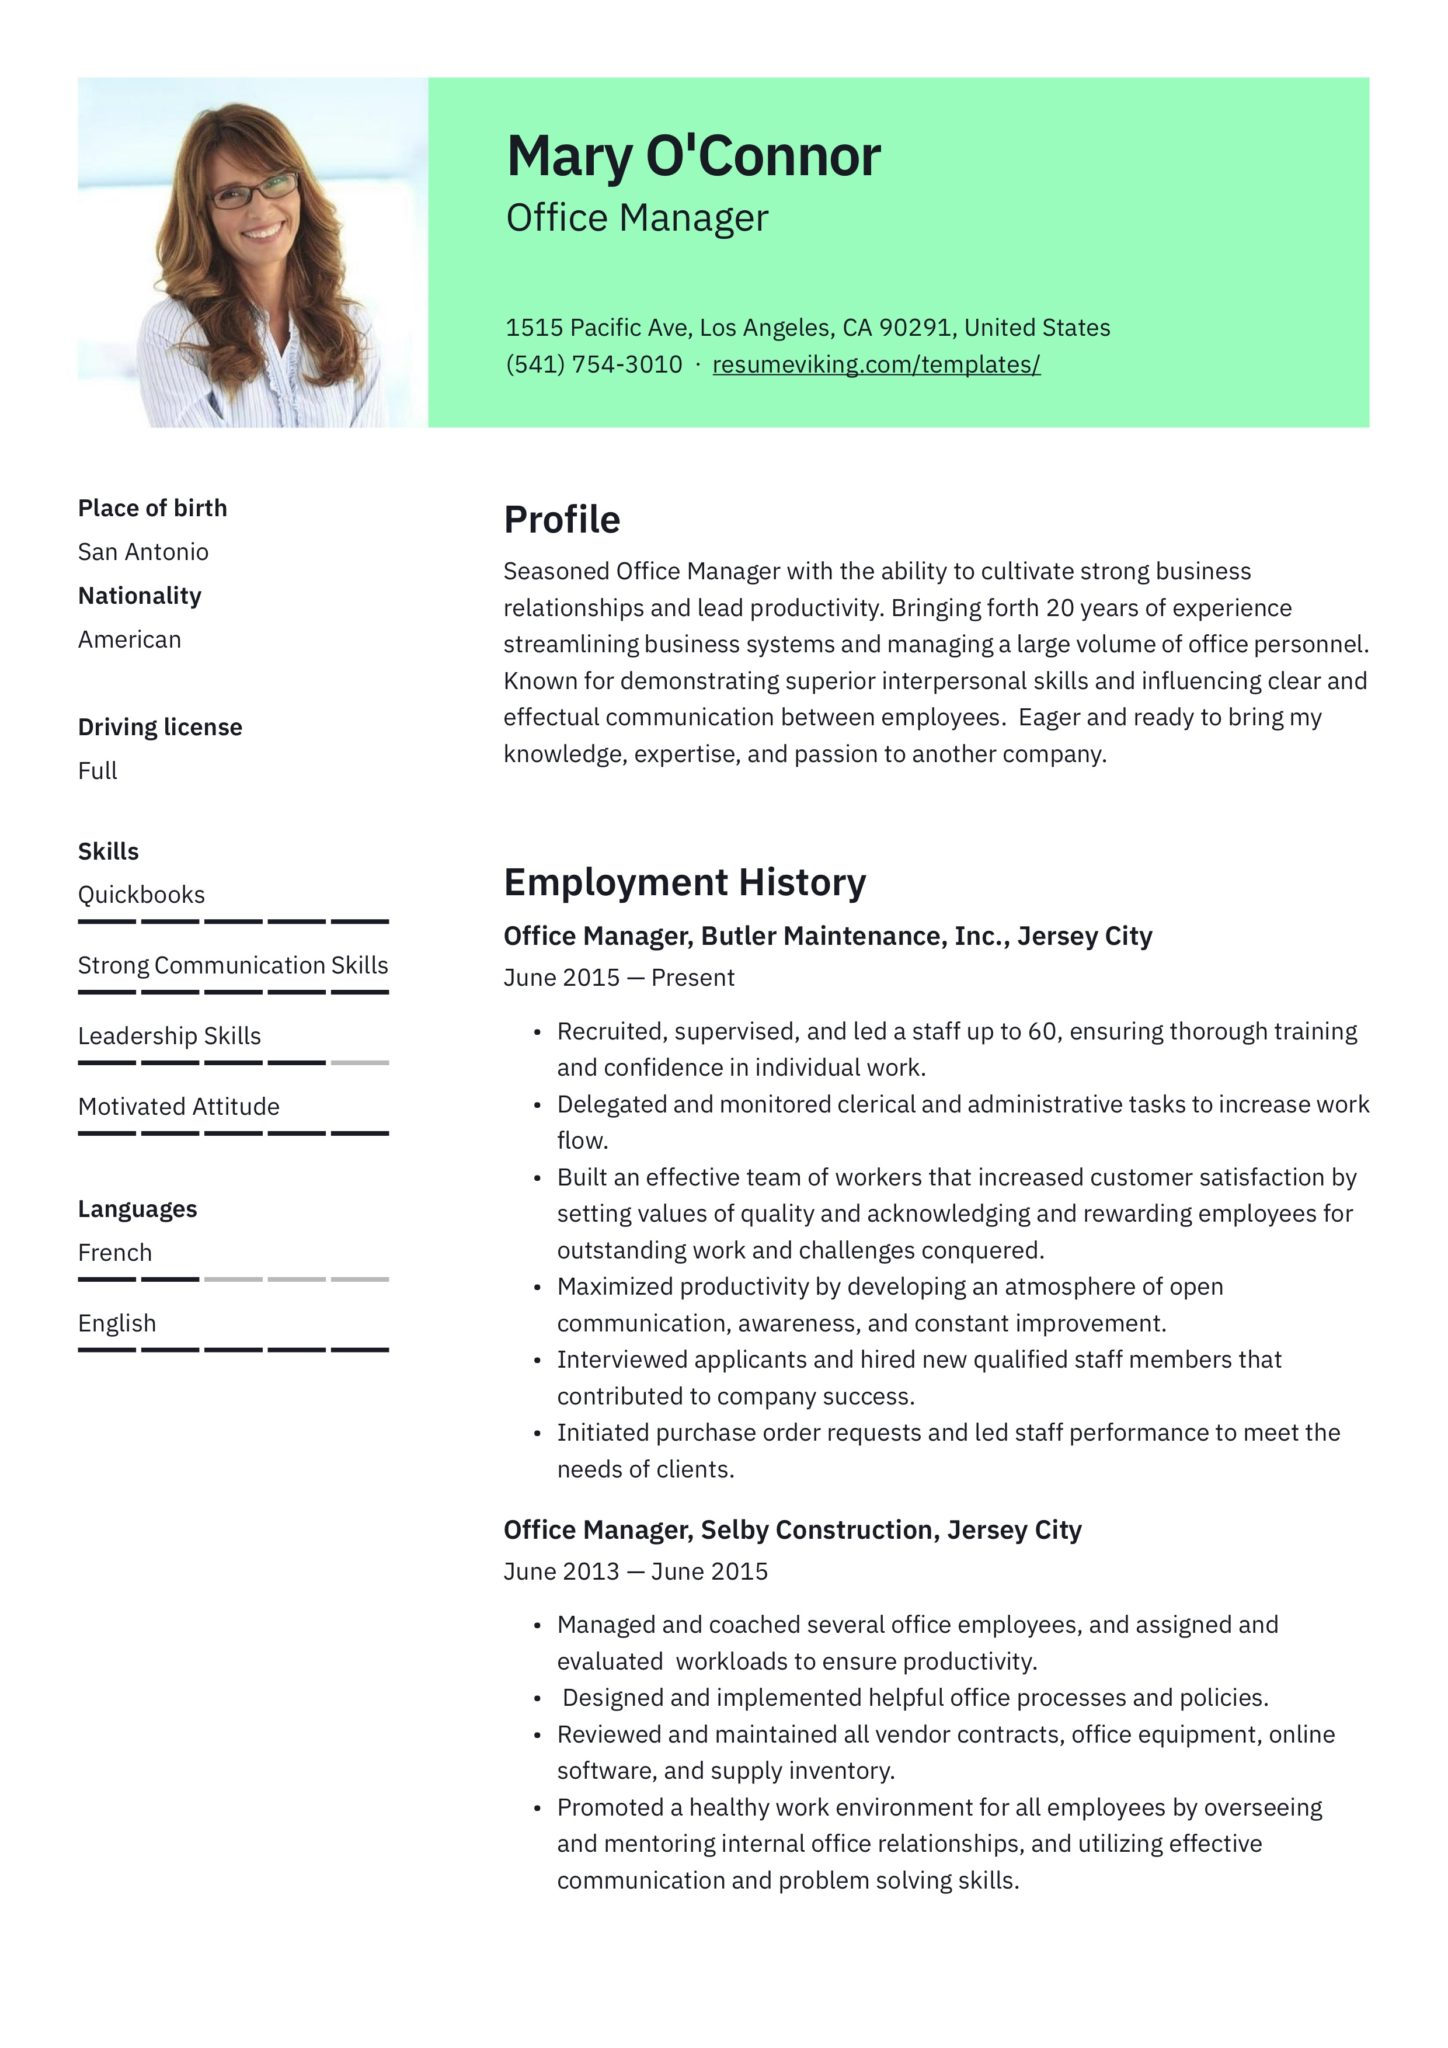 office manager resume guide samples pdf best scaled plumber pipefitter examples free Resume Best Office Manager Resume